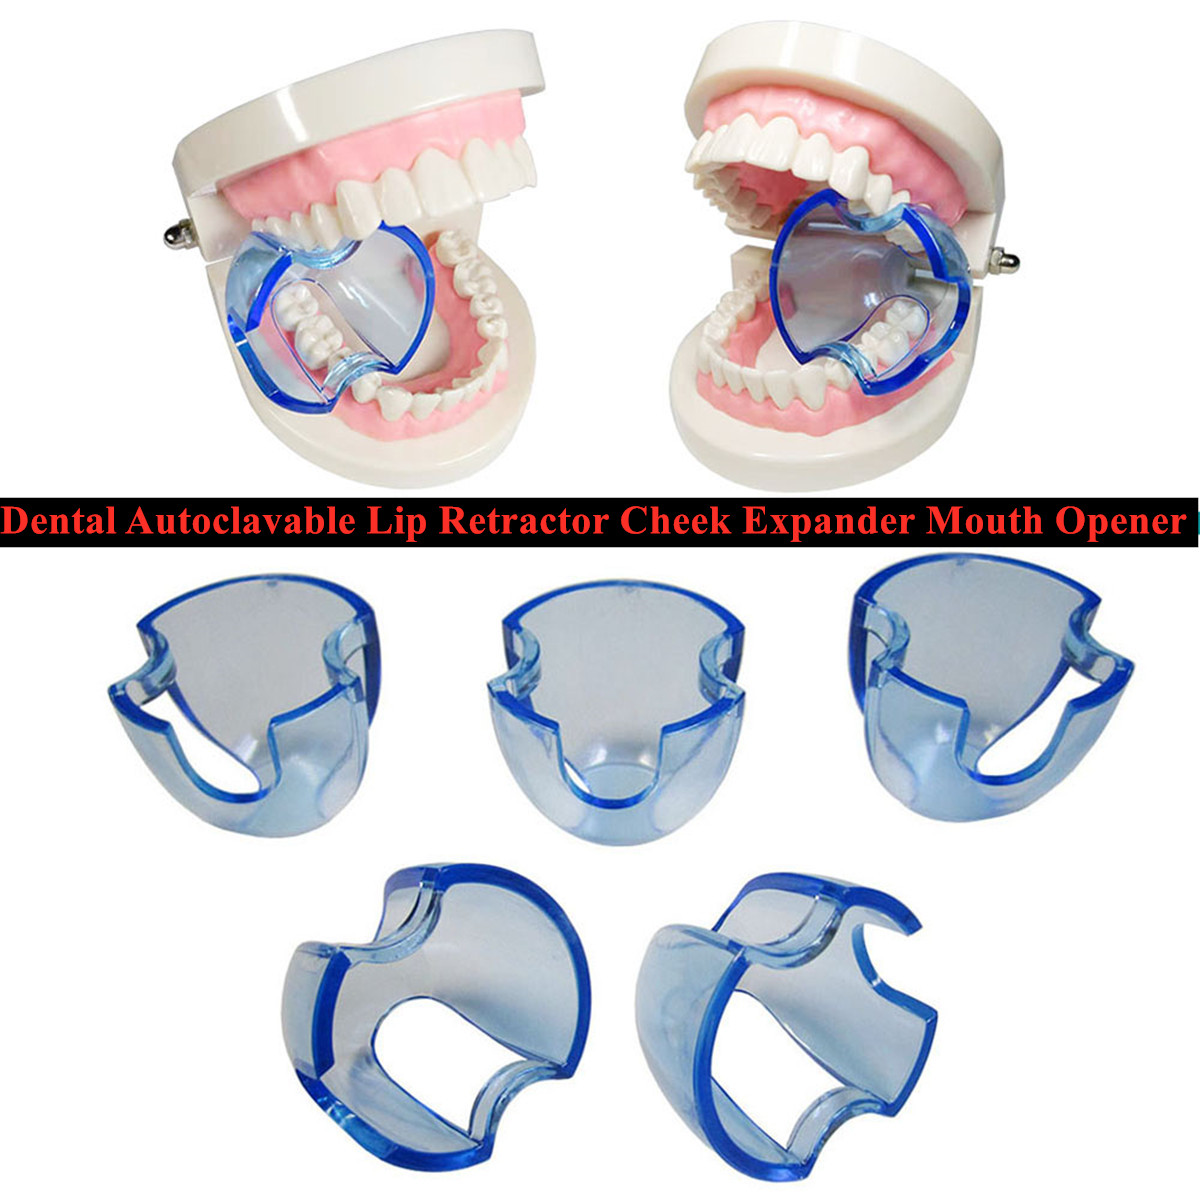 25 pcs/lot Dental Lip Retractor Cheek Expander Mouth Opener Posterior Anterior Teeth Whitening Intraoral Oral Care Autoclavable